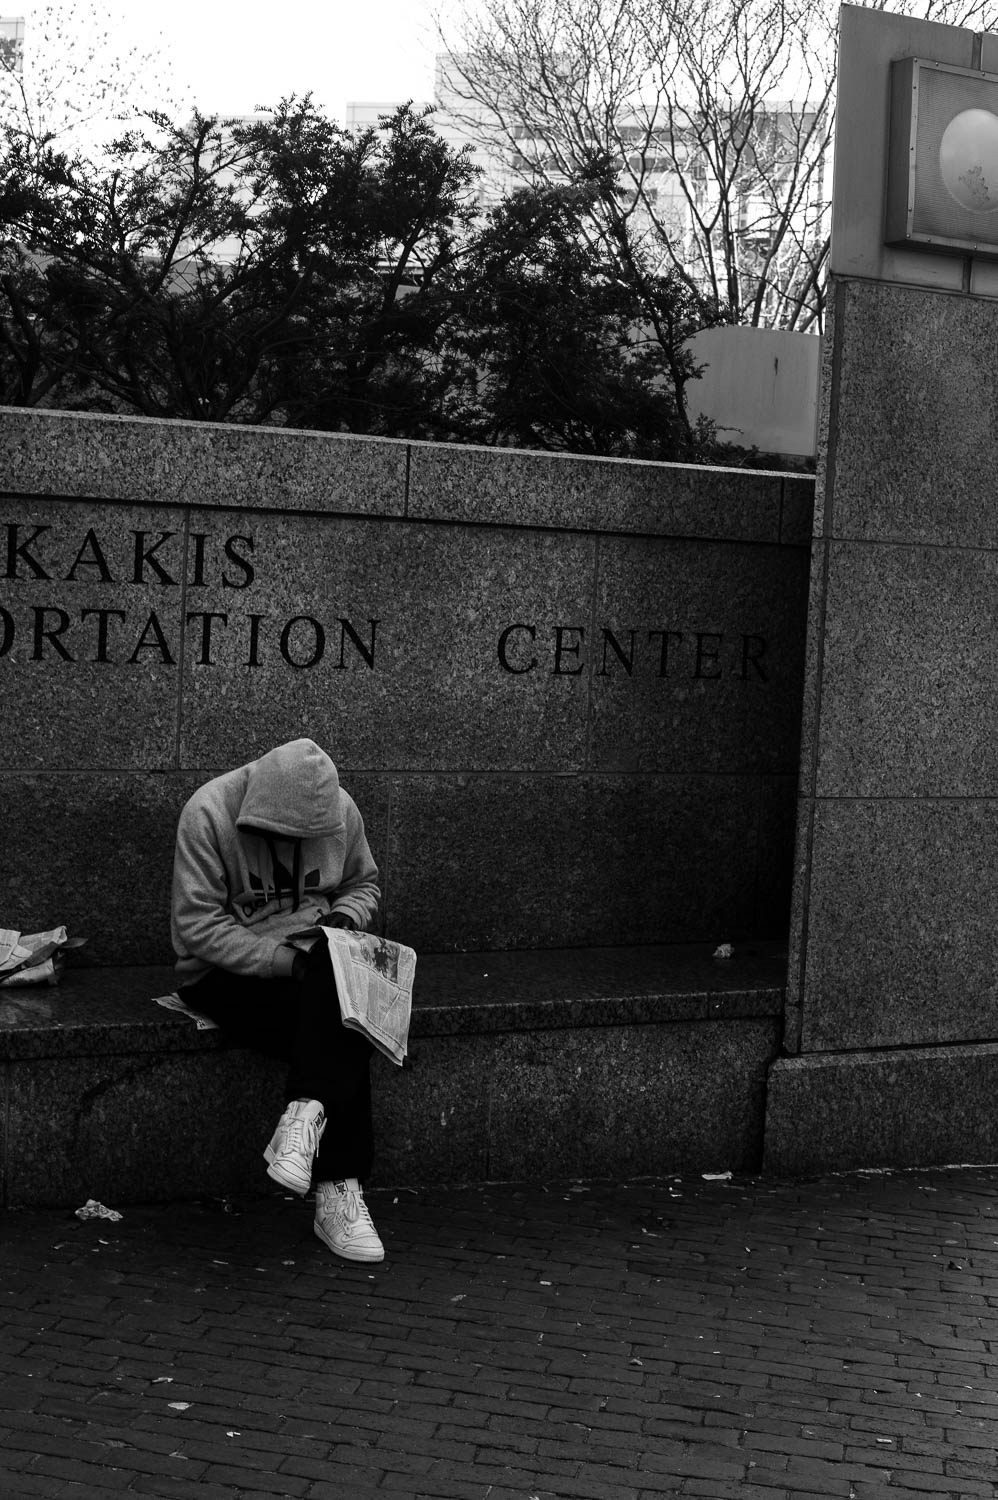 A man wearing a hood slumps over a newspaper in Boston